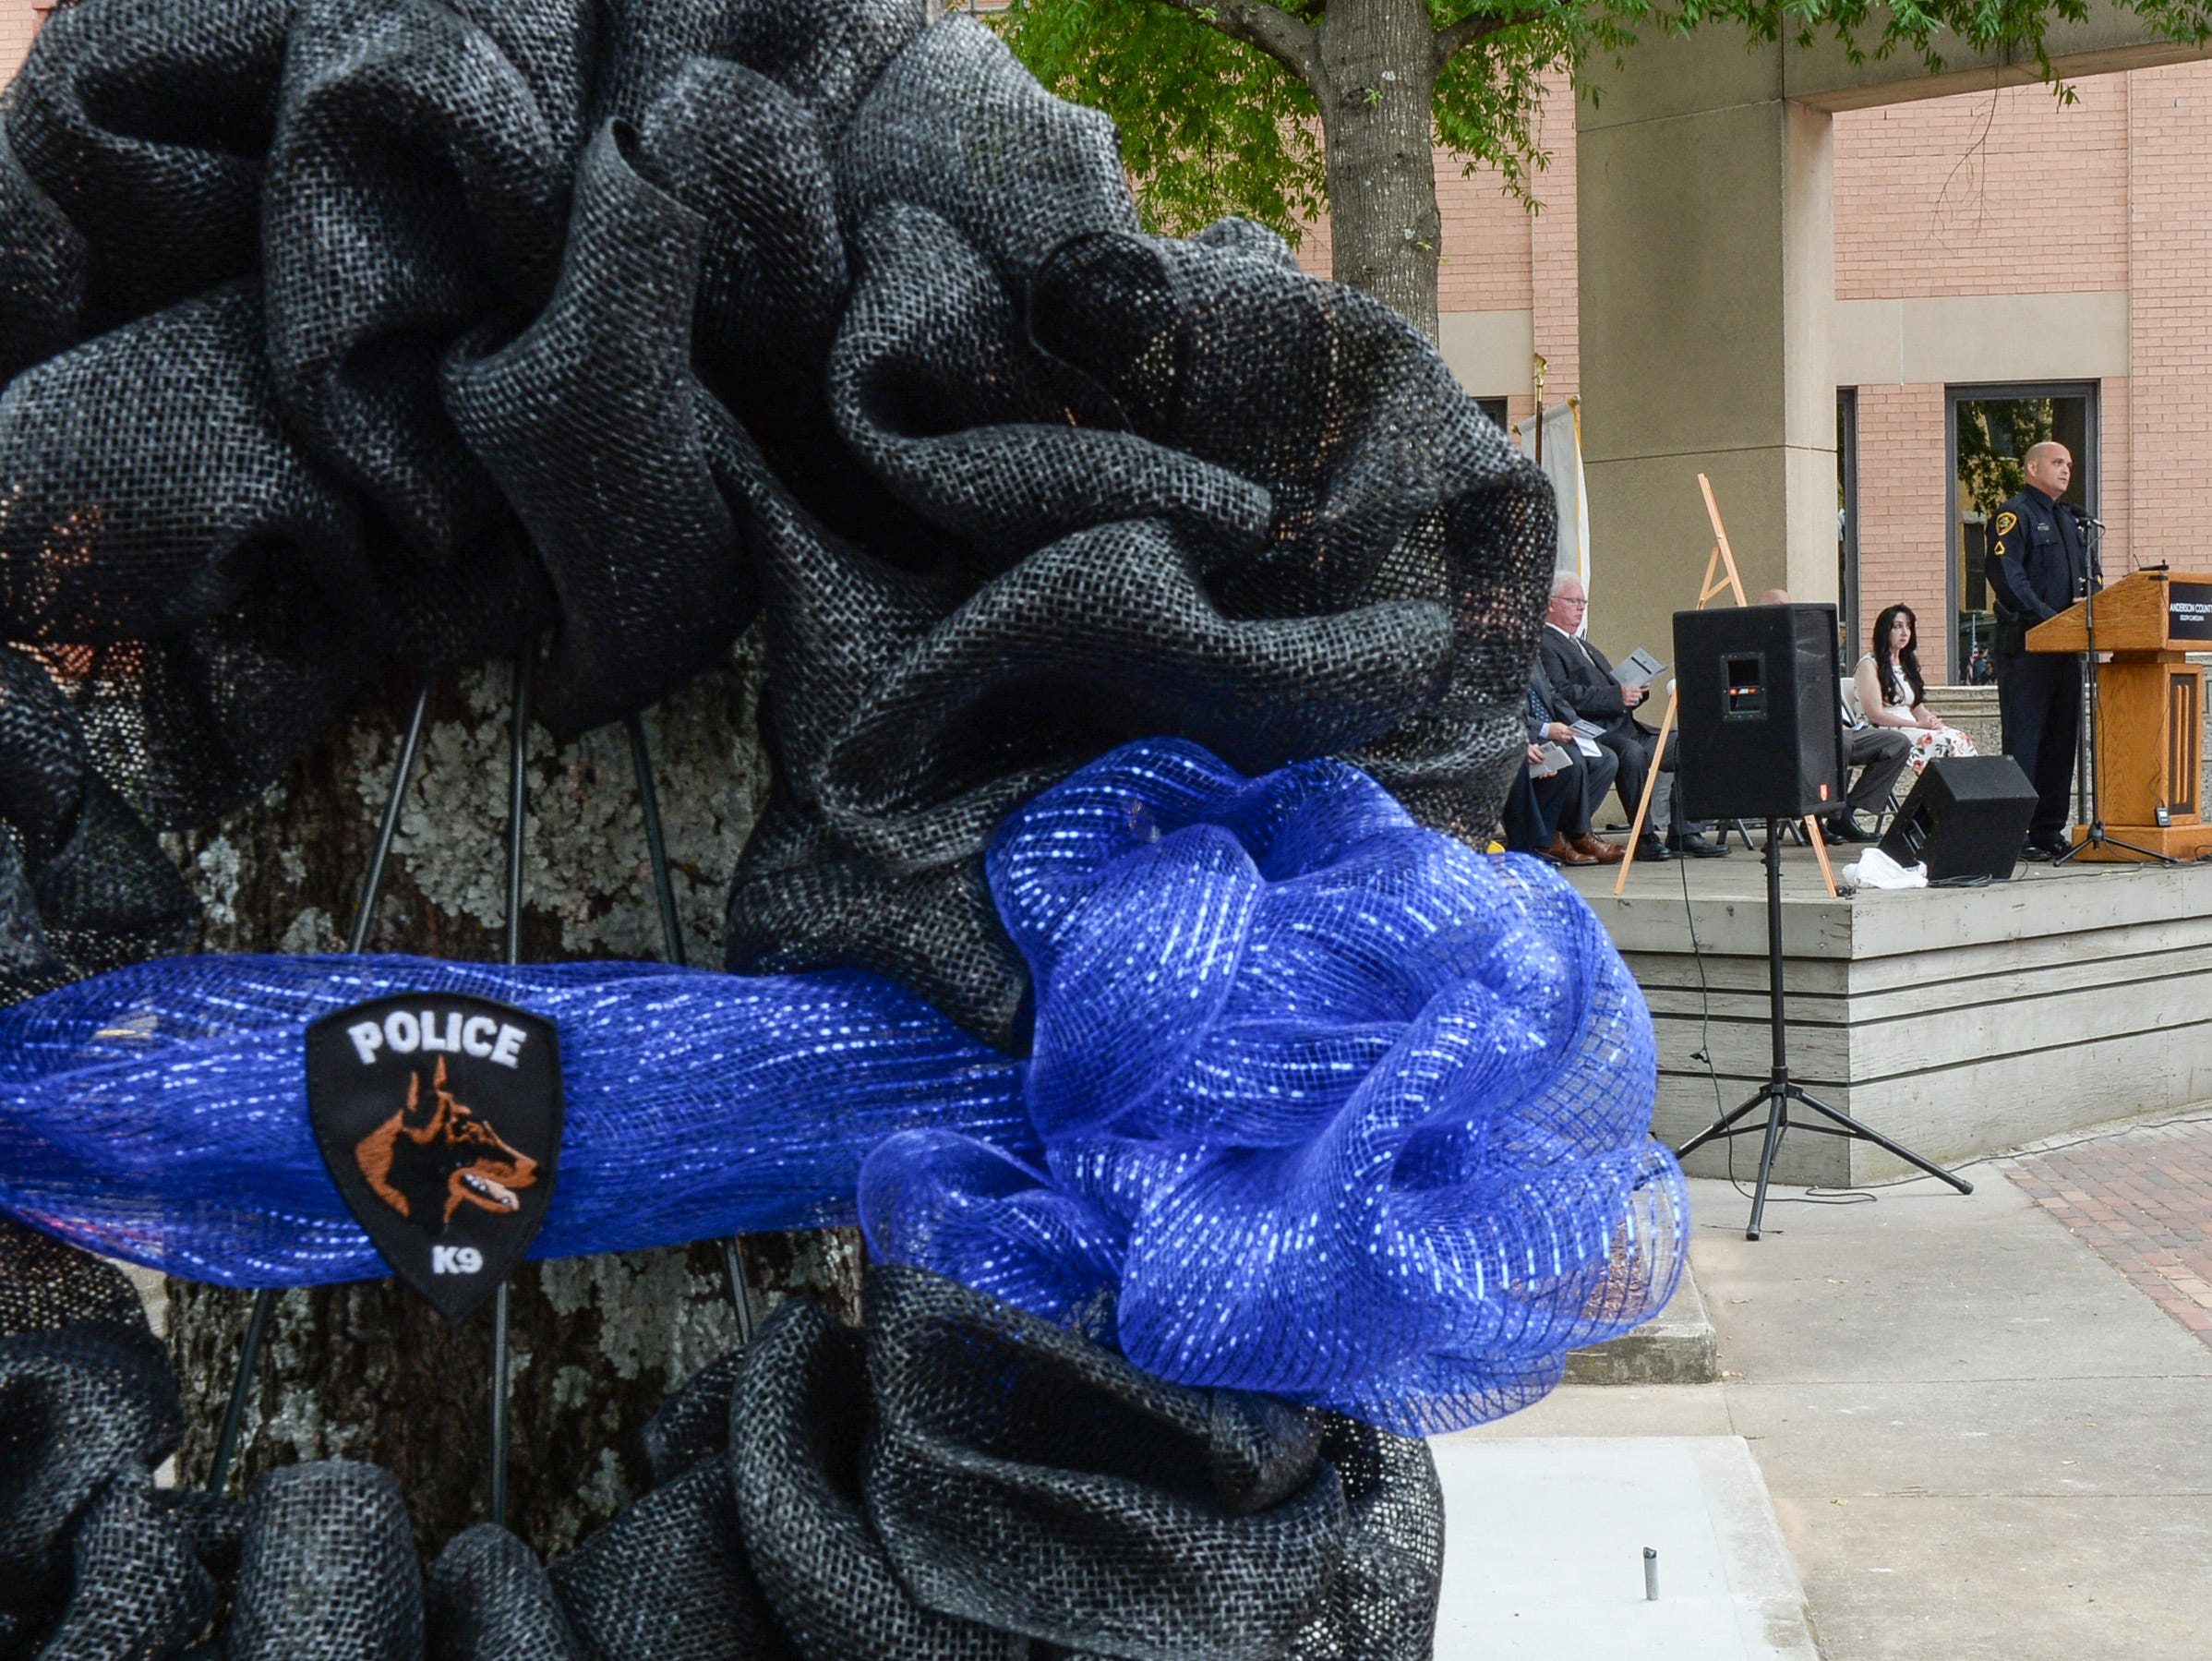 Brandon Surratt of Greenville County Sheriff's Office talks about serving and thanks those for creating the new Fraternal Order of Police monument for fallen K-9 Duchess and Hyco, during the 2019 Peace Officer Memorial Service Wednesday May 15, 2019. People attended to help honor the lives of officers lost in the line of duty.